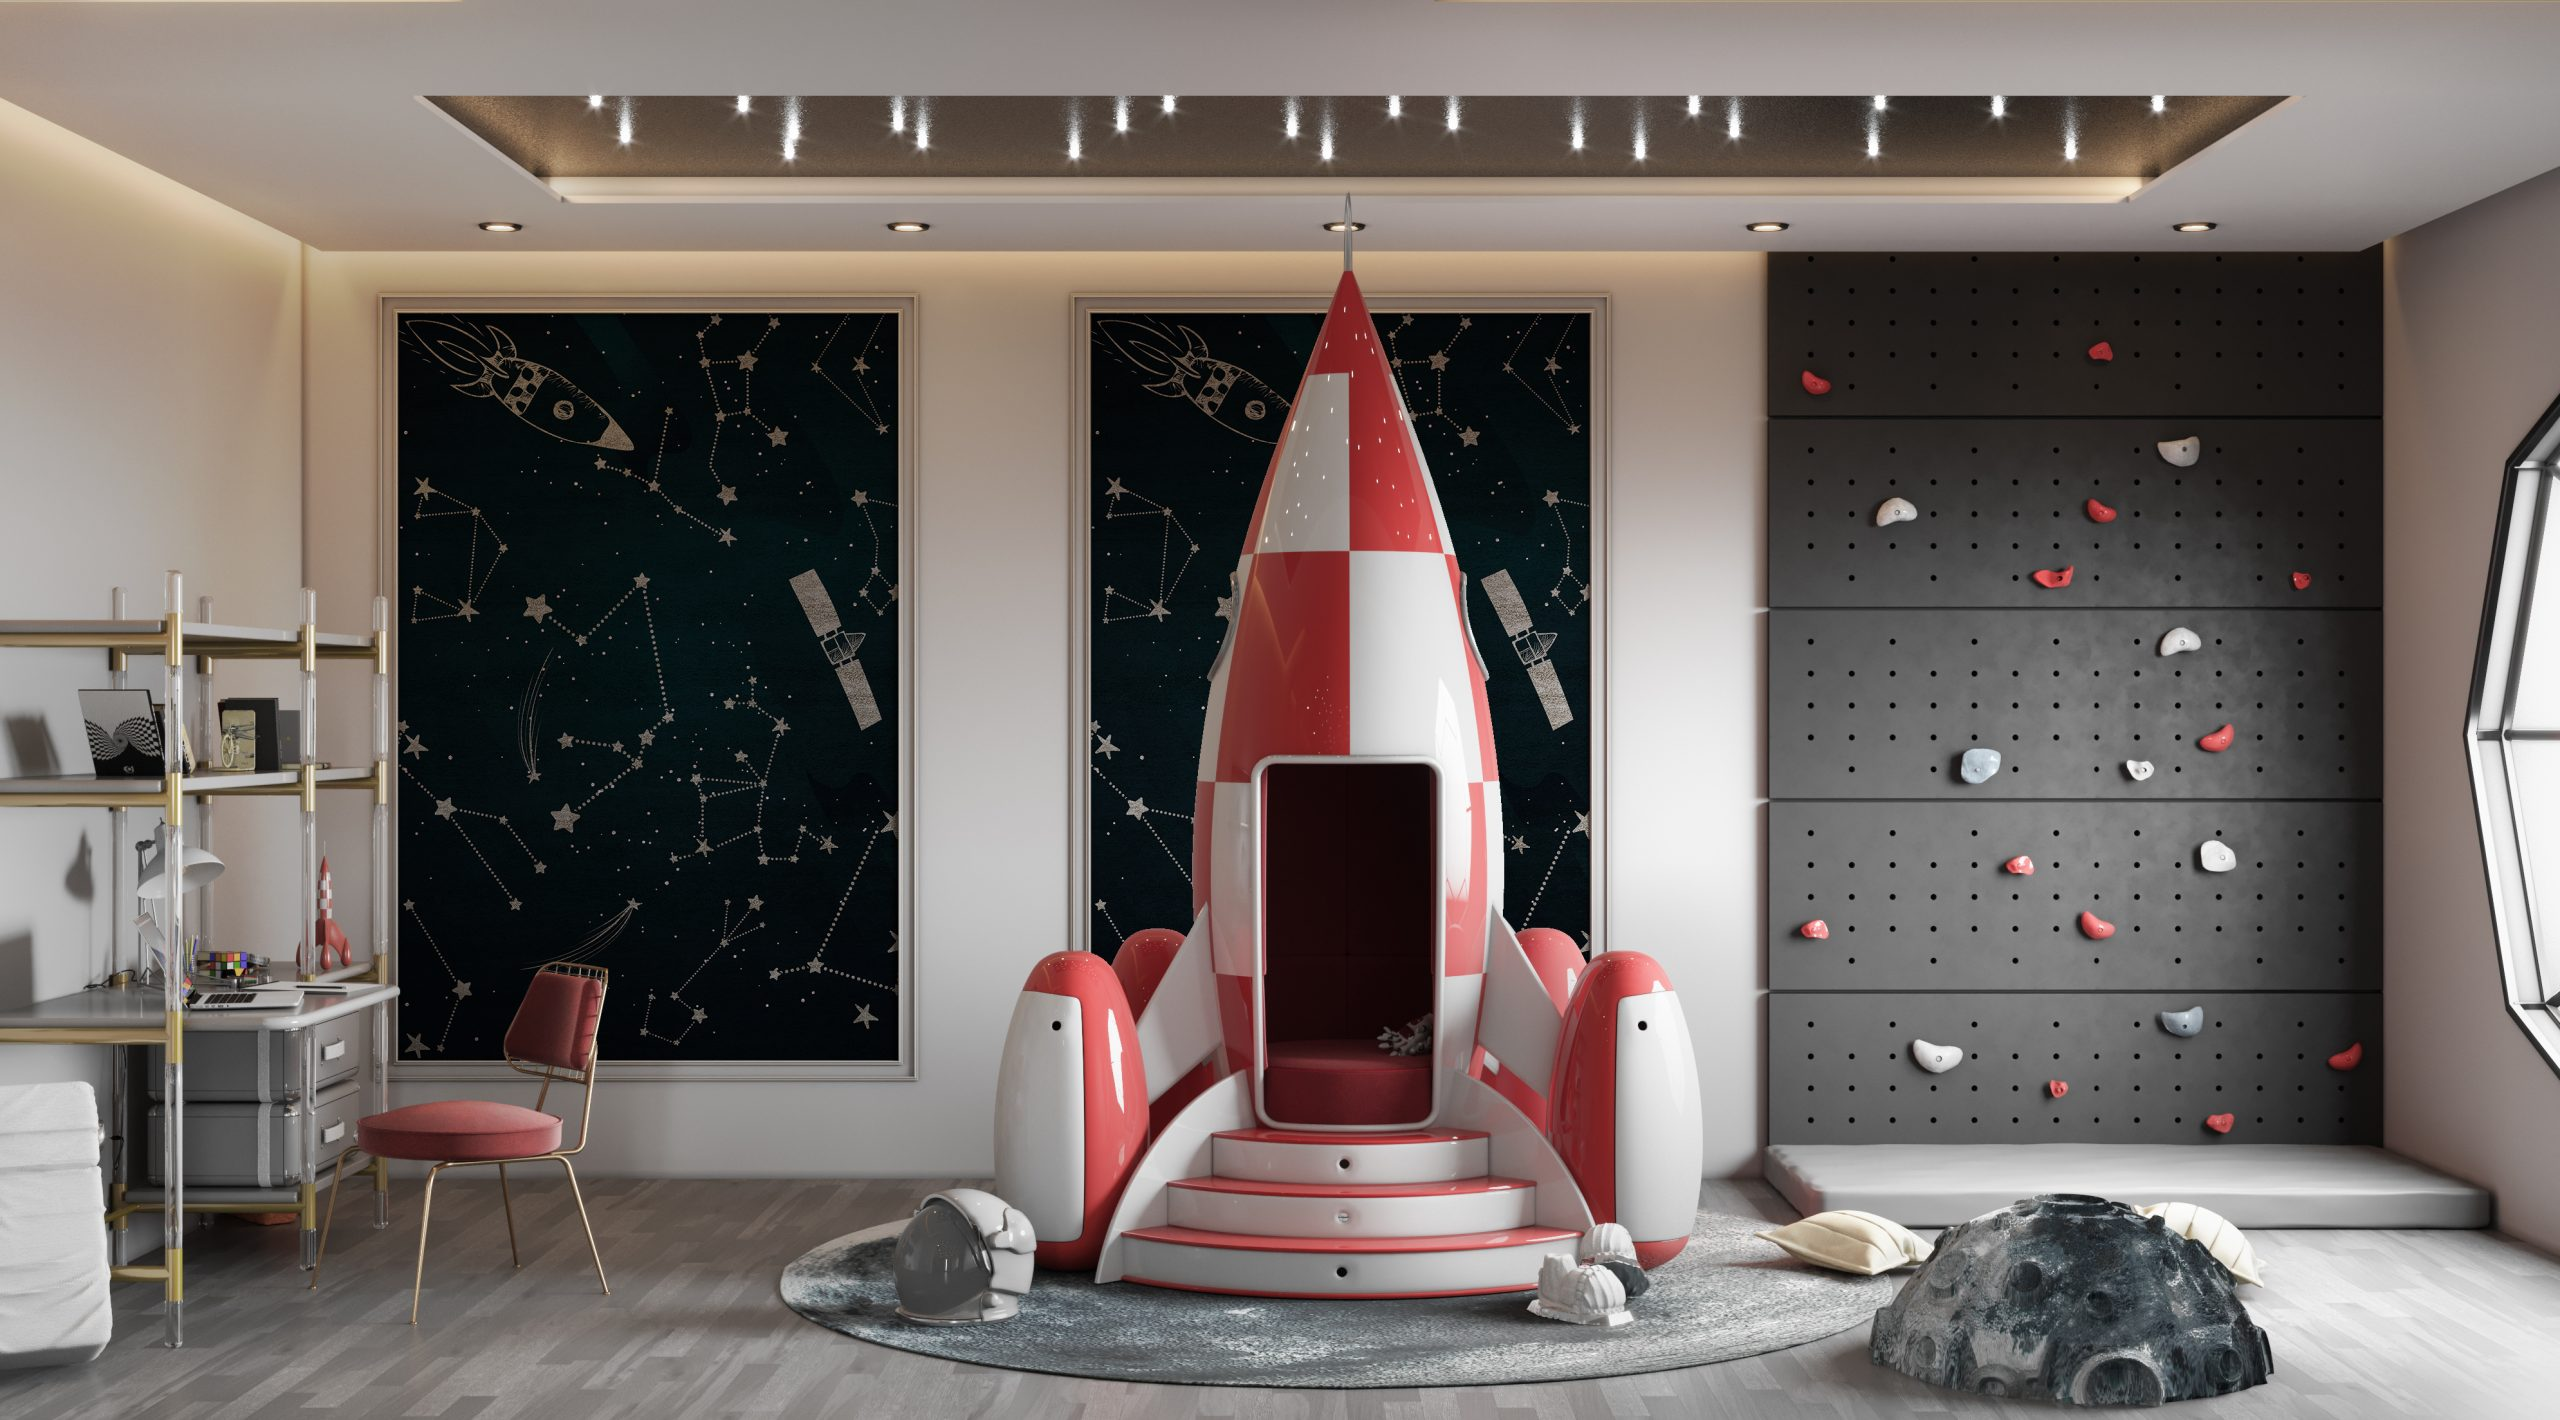 Luxury Space Theme Kids Room and playroom luxury space theme kids room Luxury Space Theme Kids Room: THE STARDOM ROOM CC 01 scaled